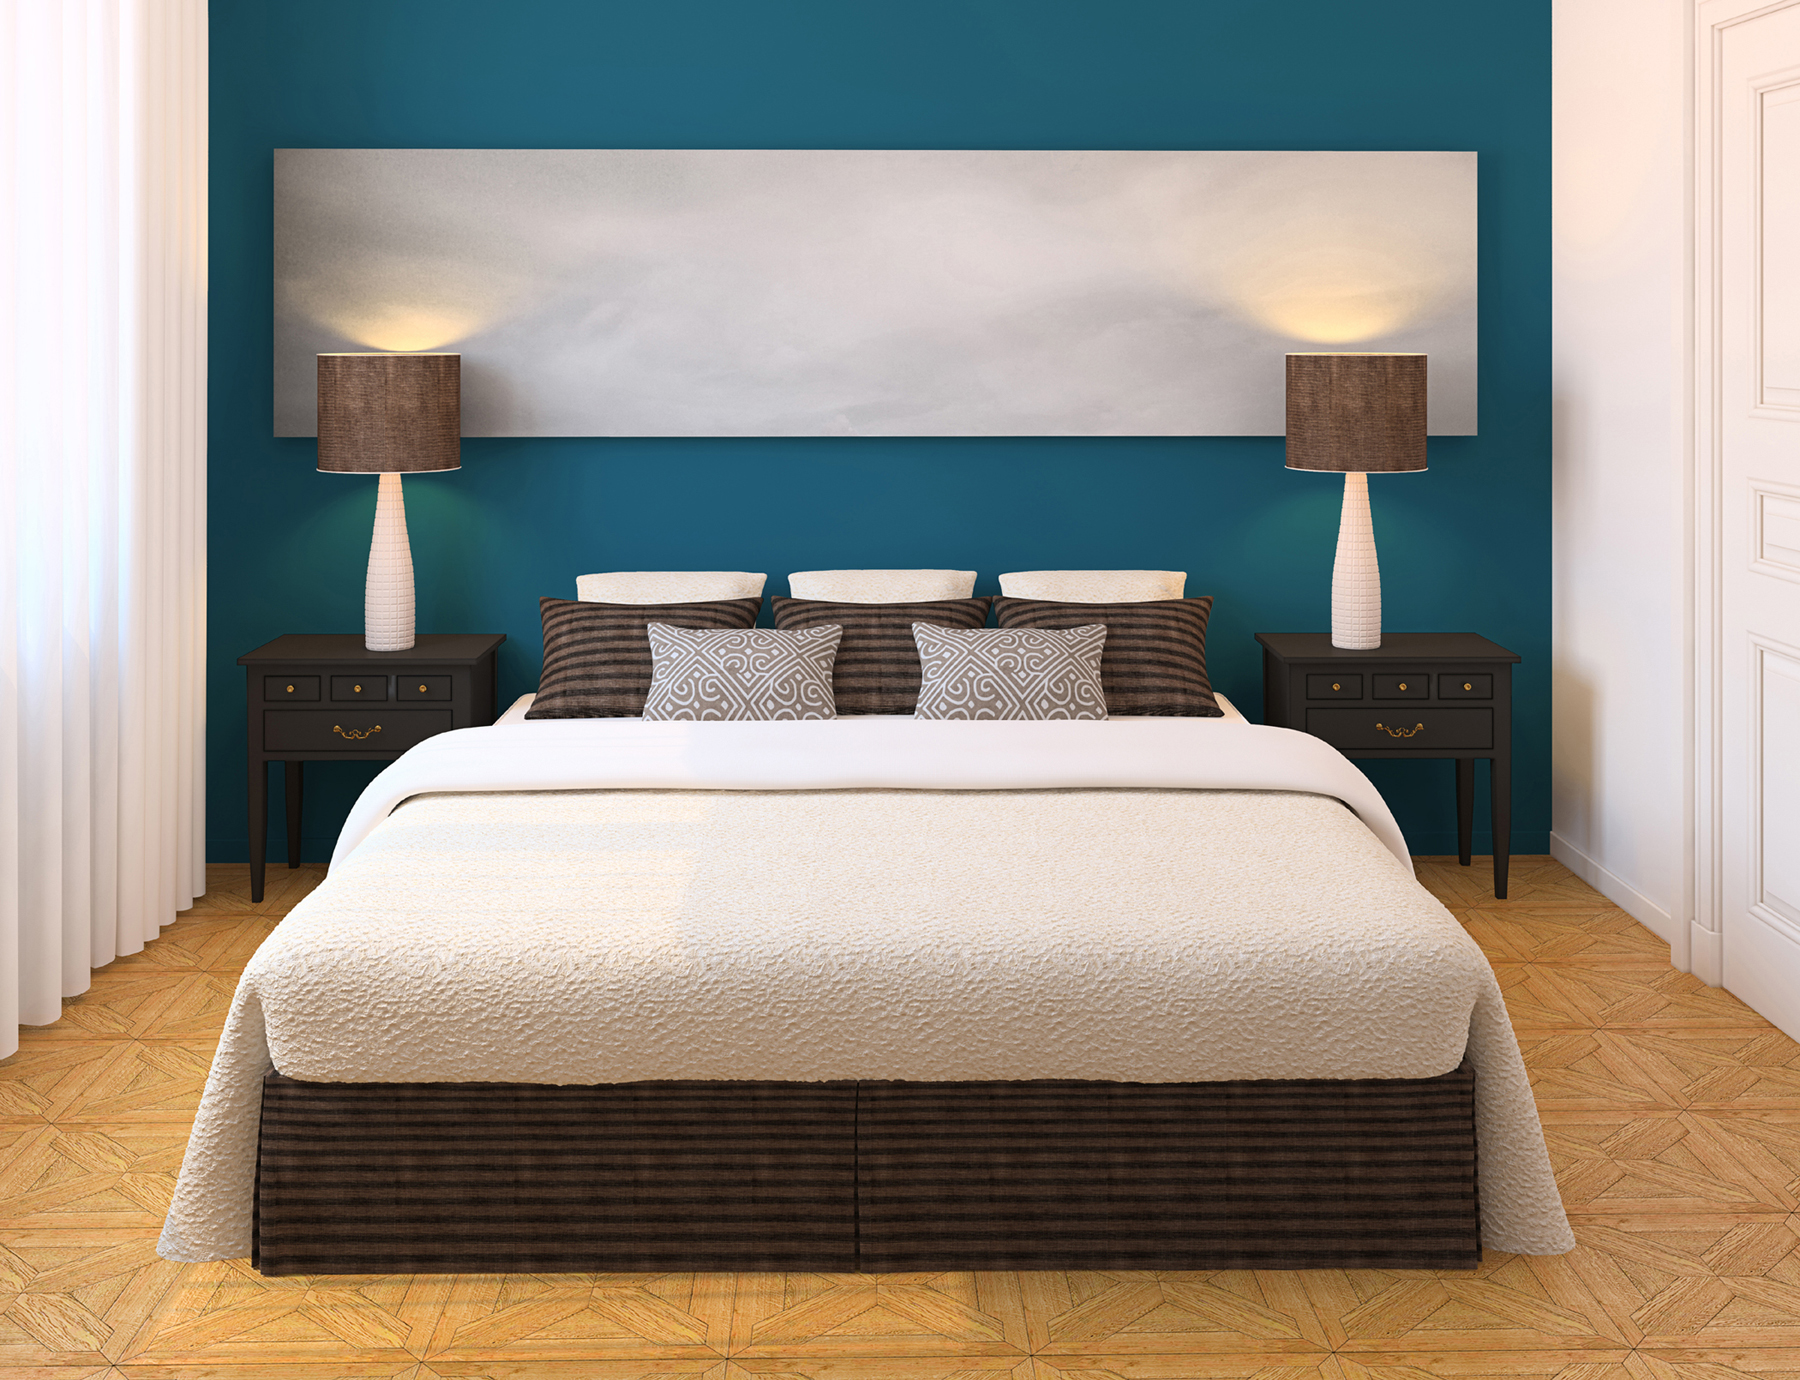 Small Guest Bedroom Paint Ideas. Modern Bedroom Interior Design With White Bed Dark Color Of Pillows And  Lamps Stylish Tile Guest Beds for Small Spaces HomesFeed